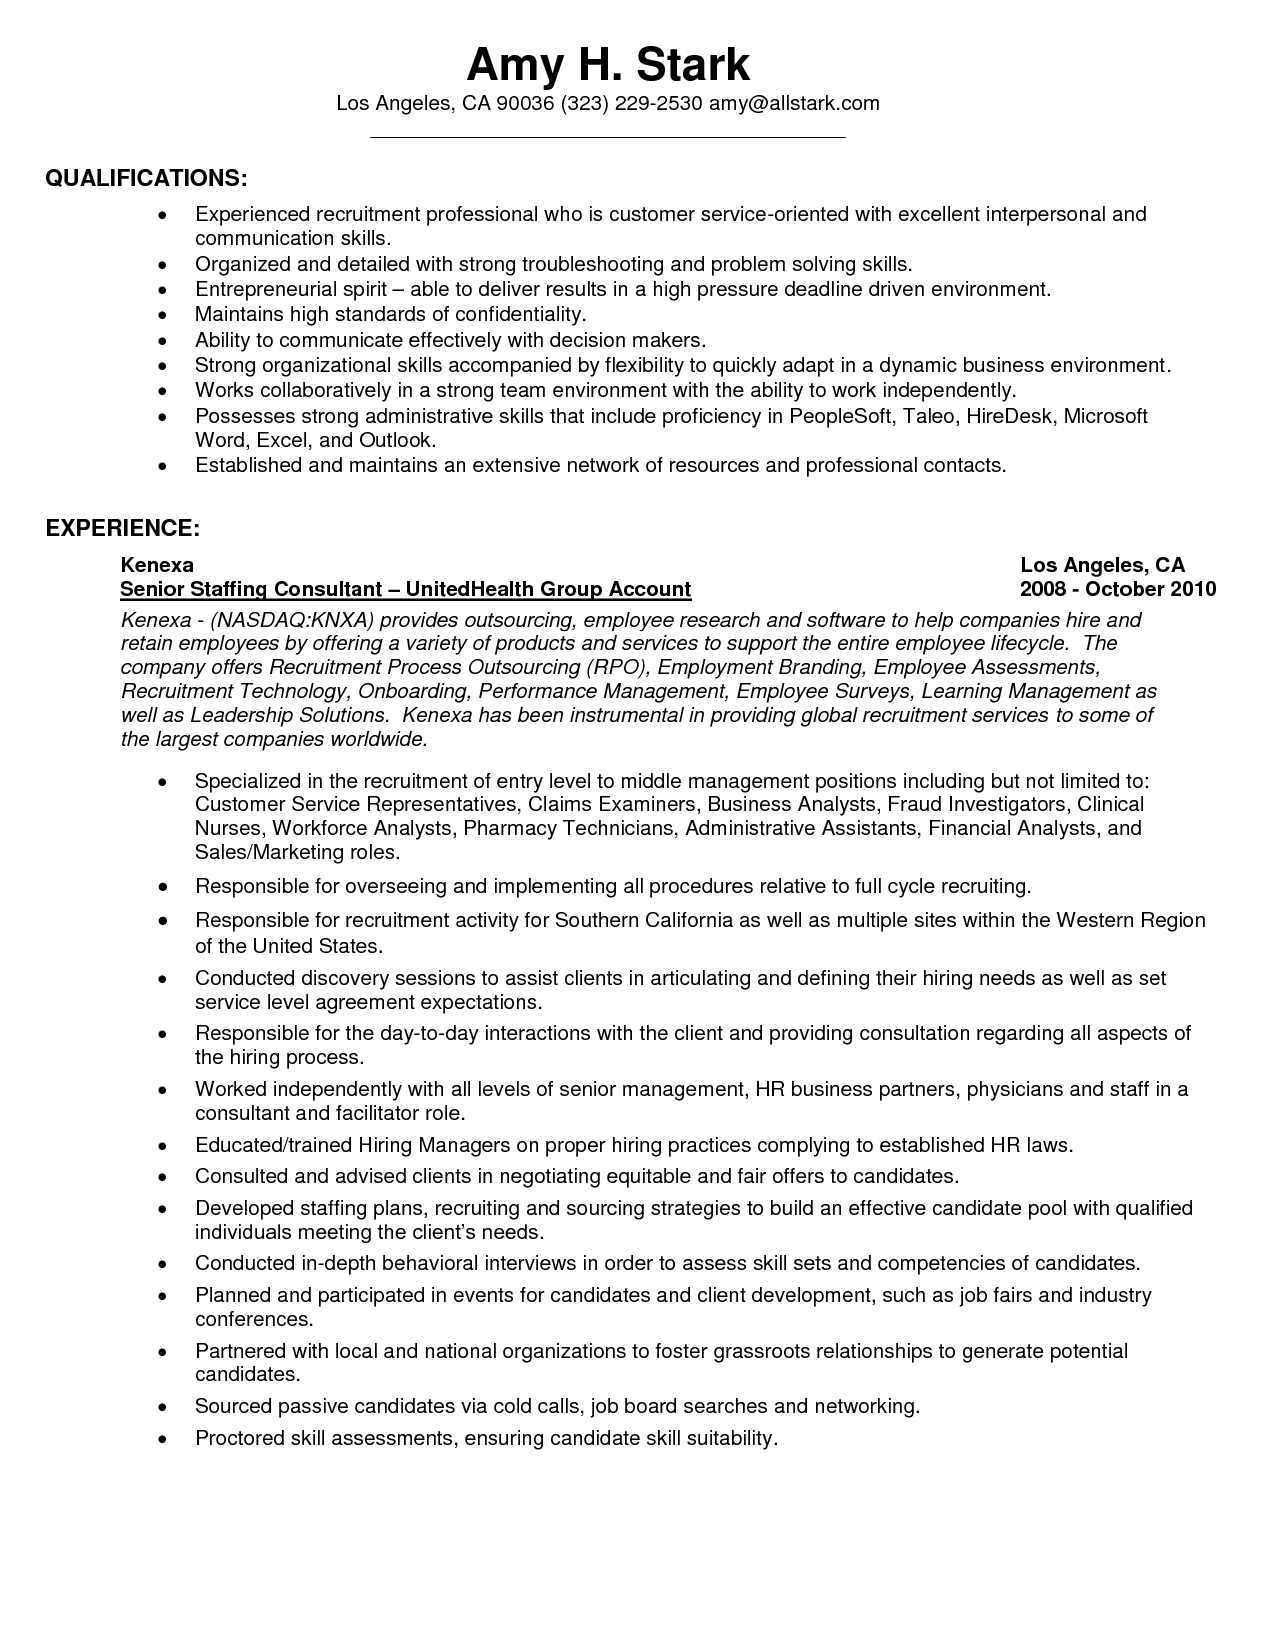 Excellent Customer Service Skills Resume